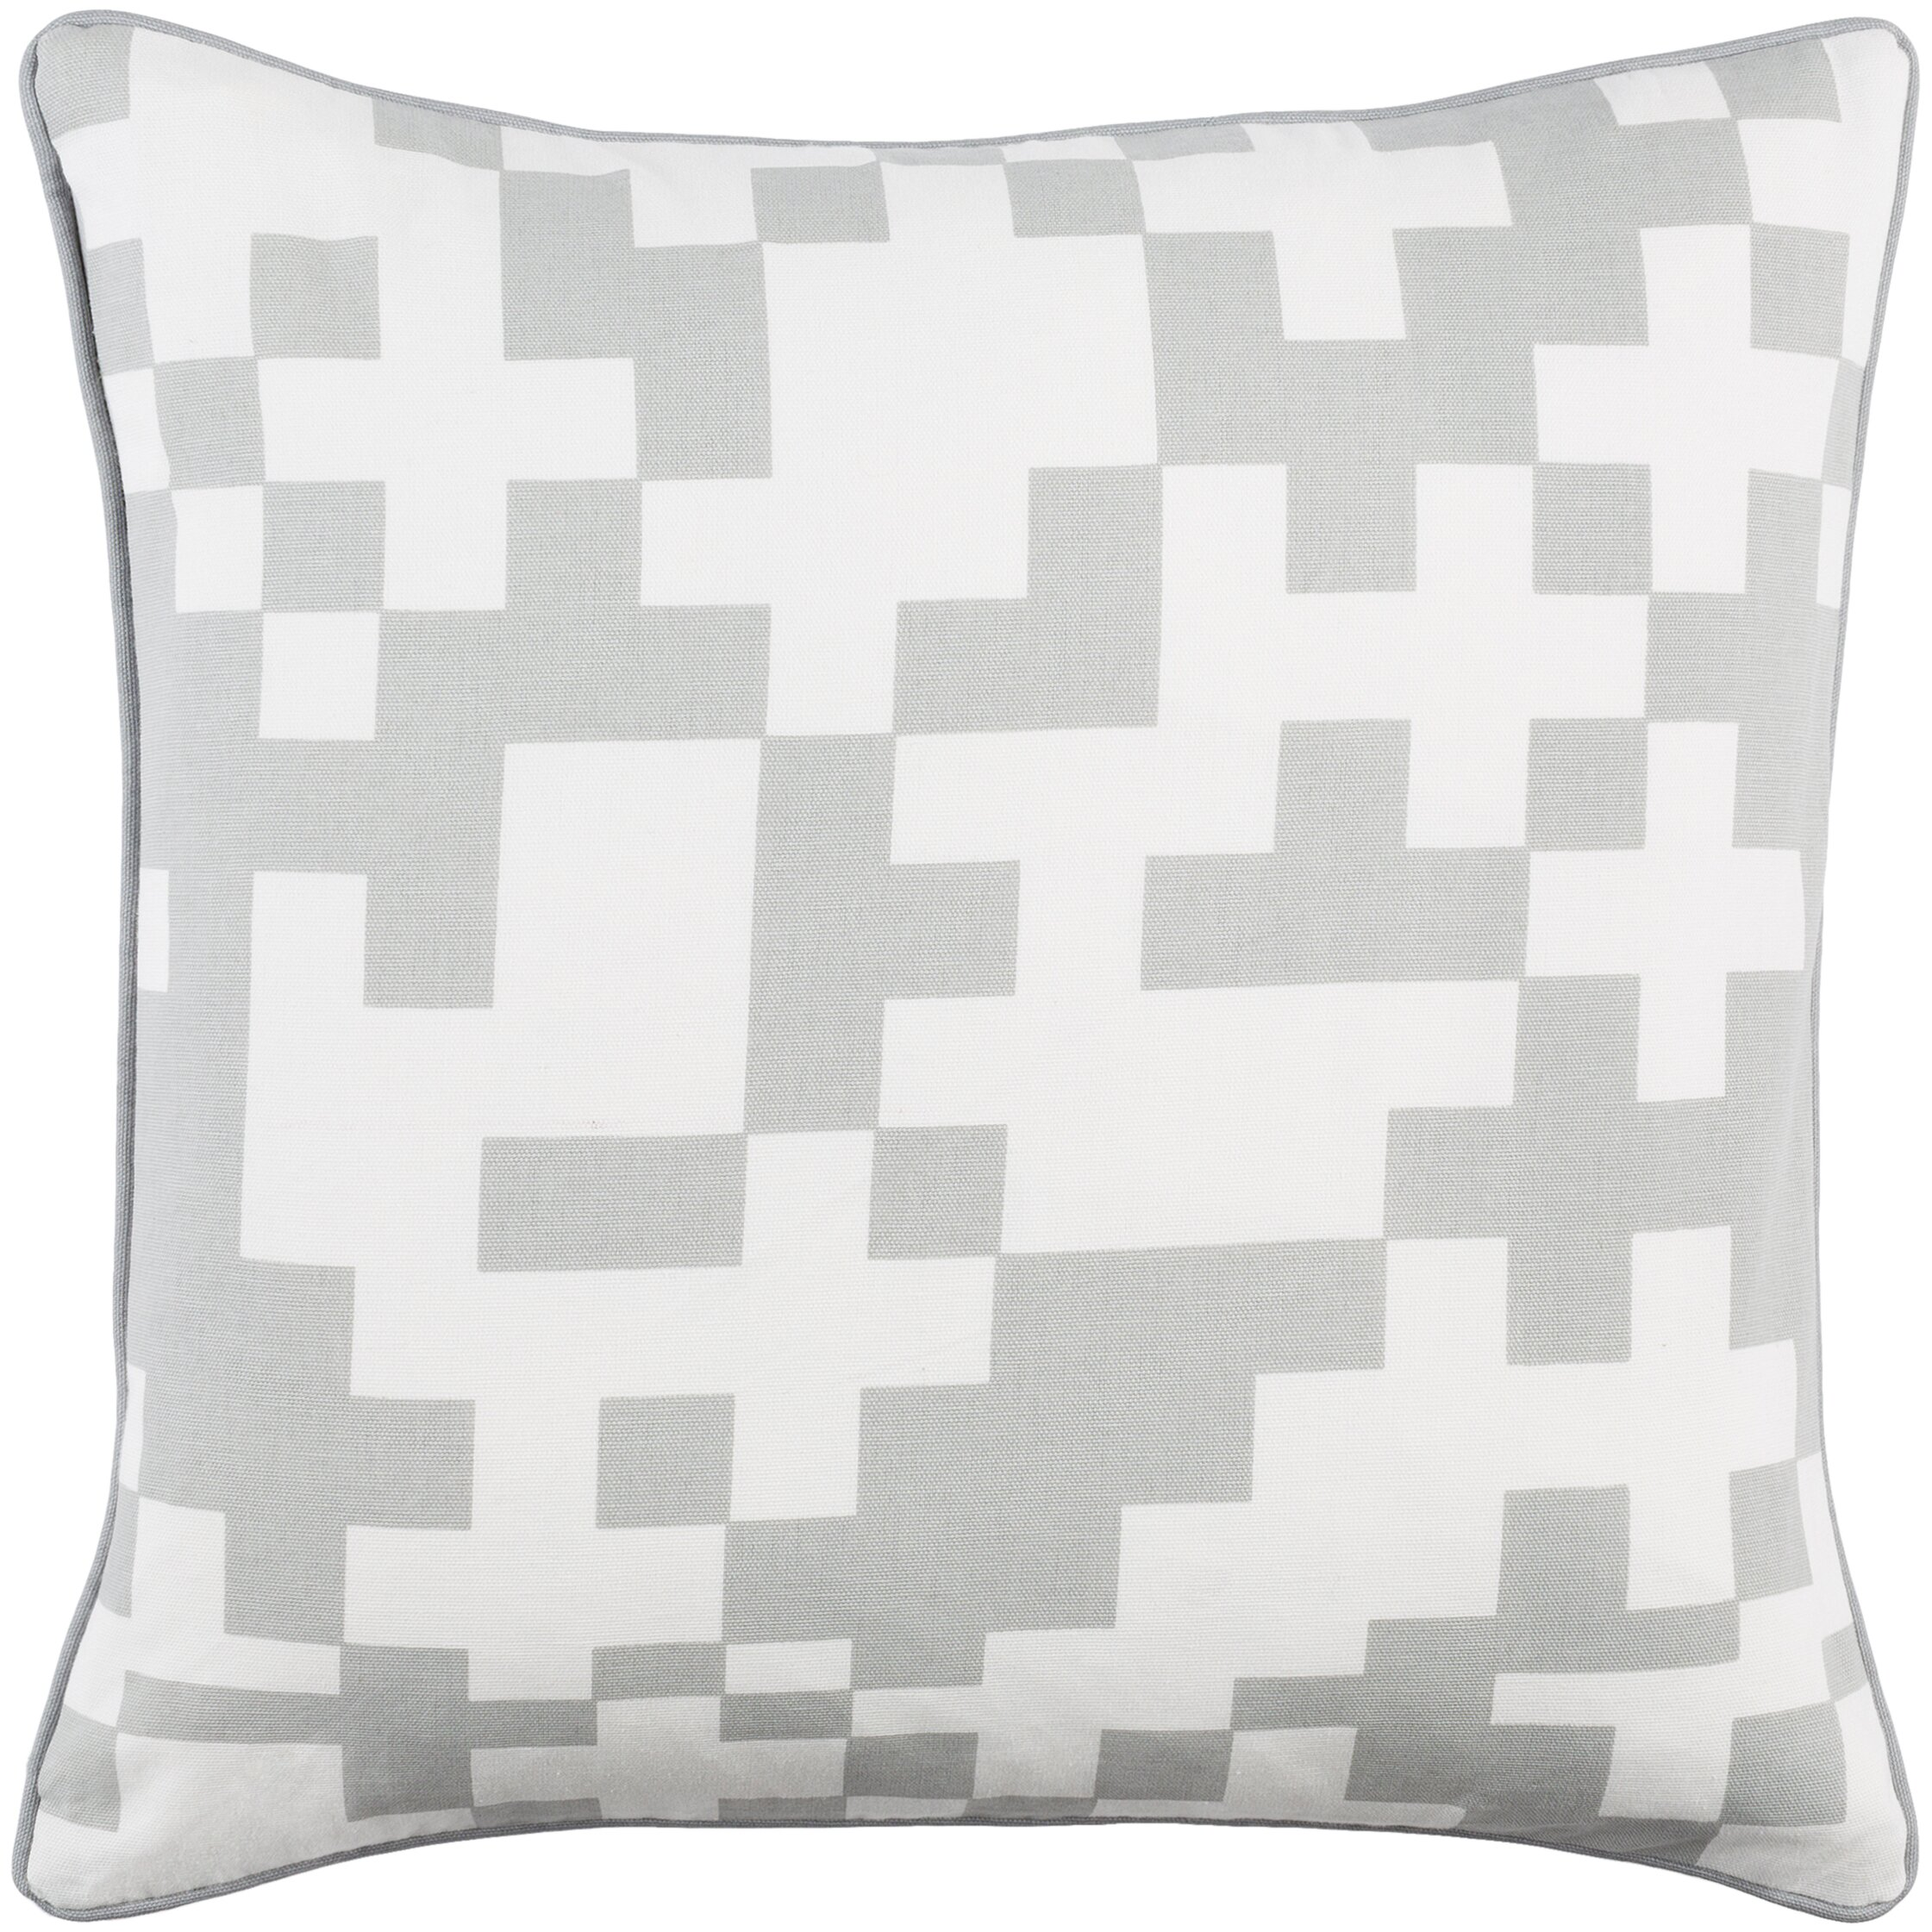 Inga Puzzle Cotton Throw Pillow Cover Wayfair.ca